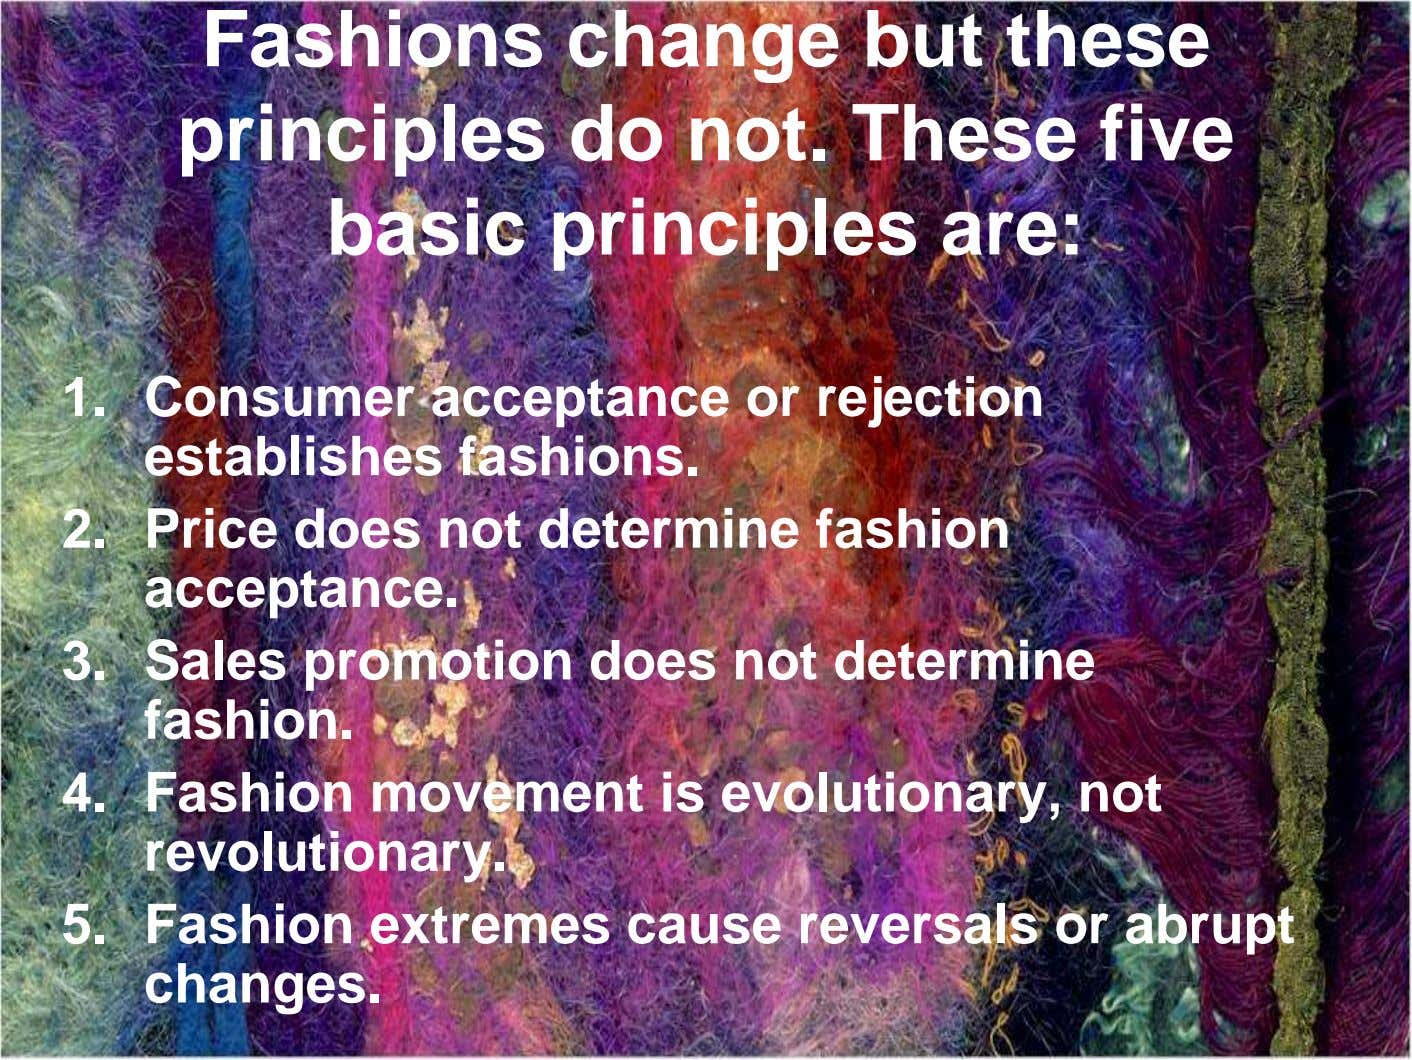 Fashions change but these principles do not. These five basic principles are: 1. Consumer acceptance